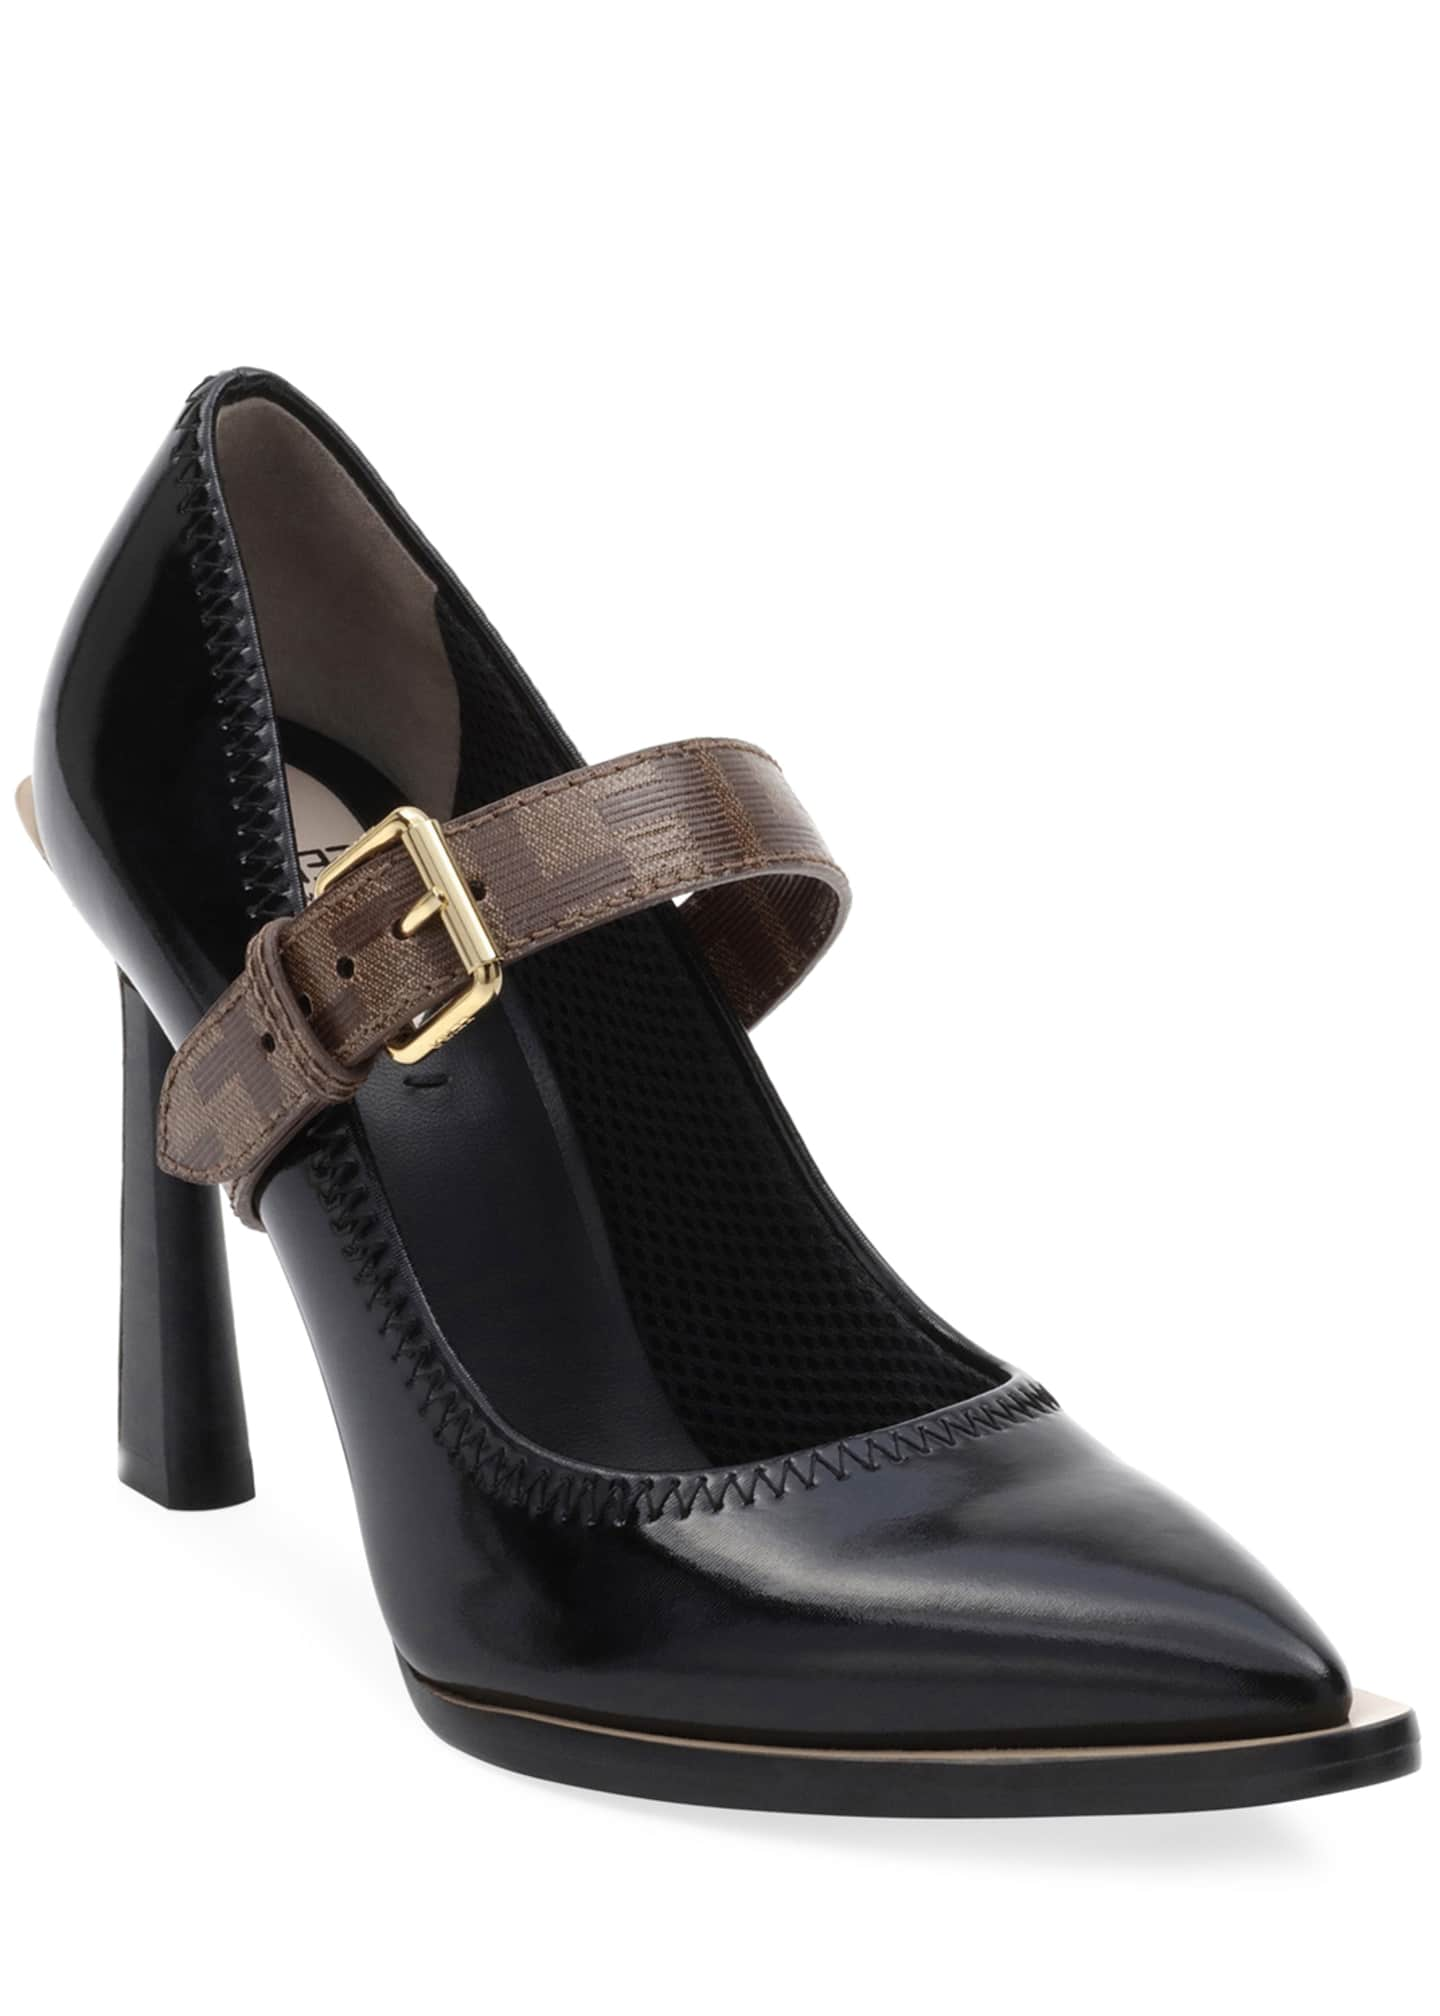 Fendi Neoprene Logo Mary Jane Pumps